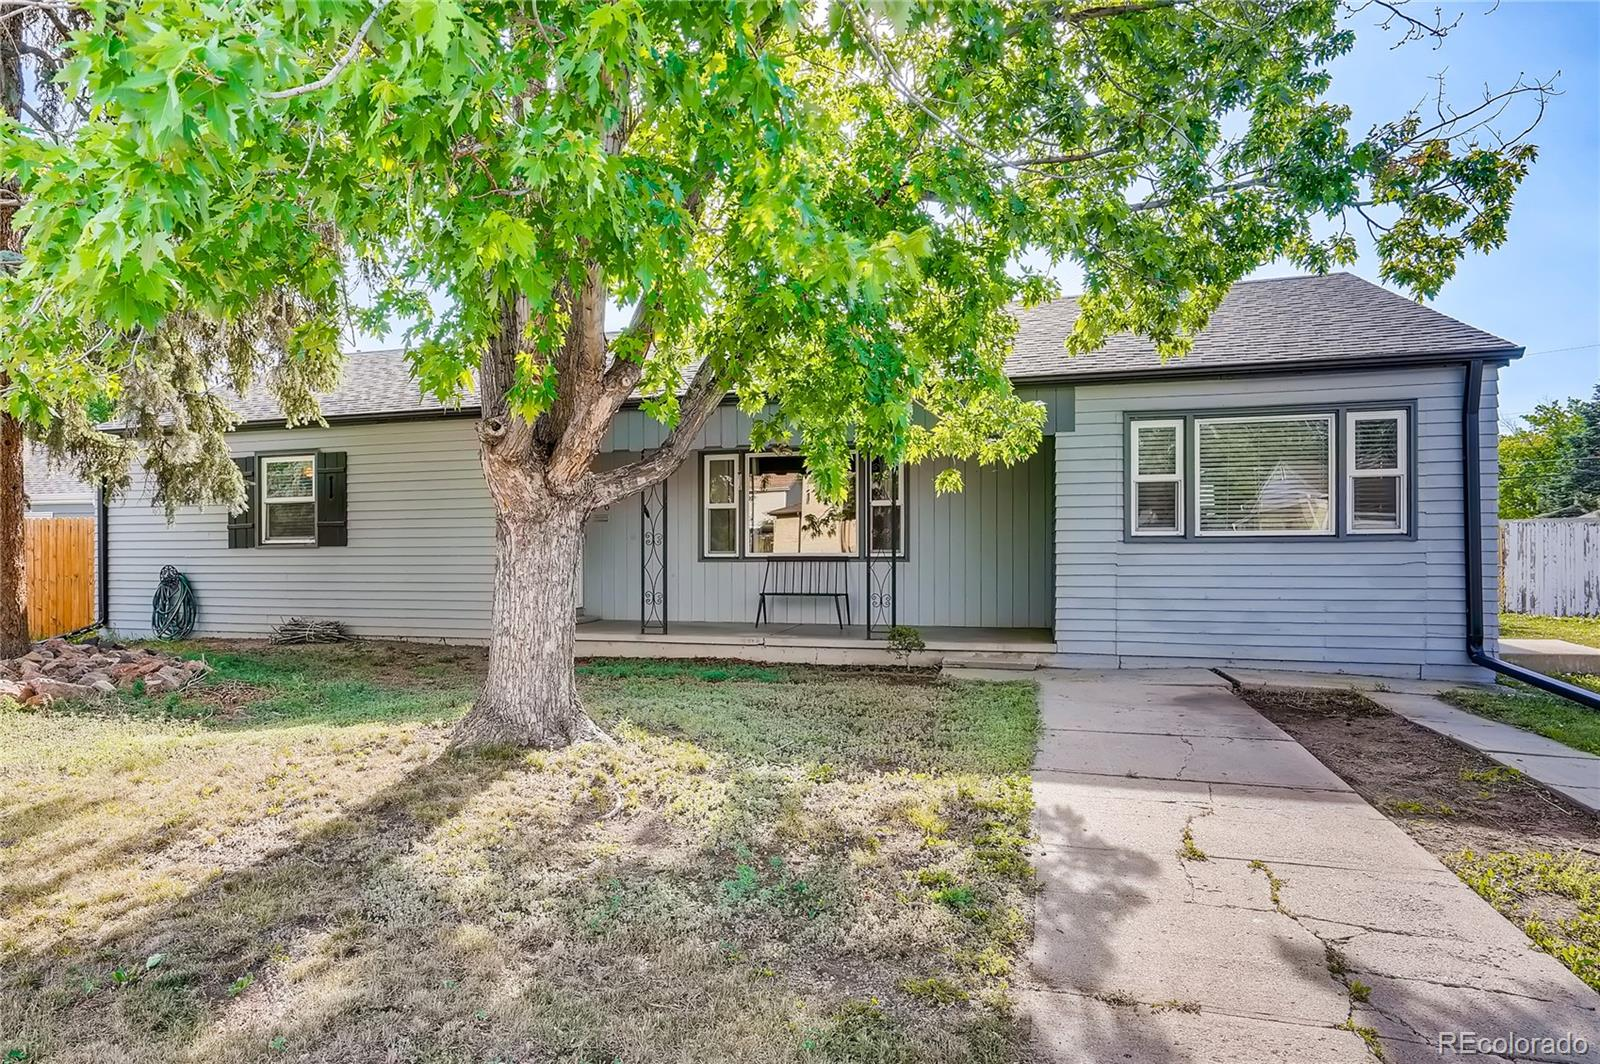 406 S Jay Street Property Photo - Lakewood, CO real estate listing